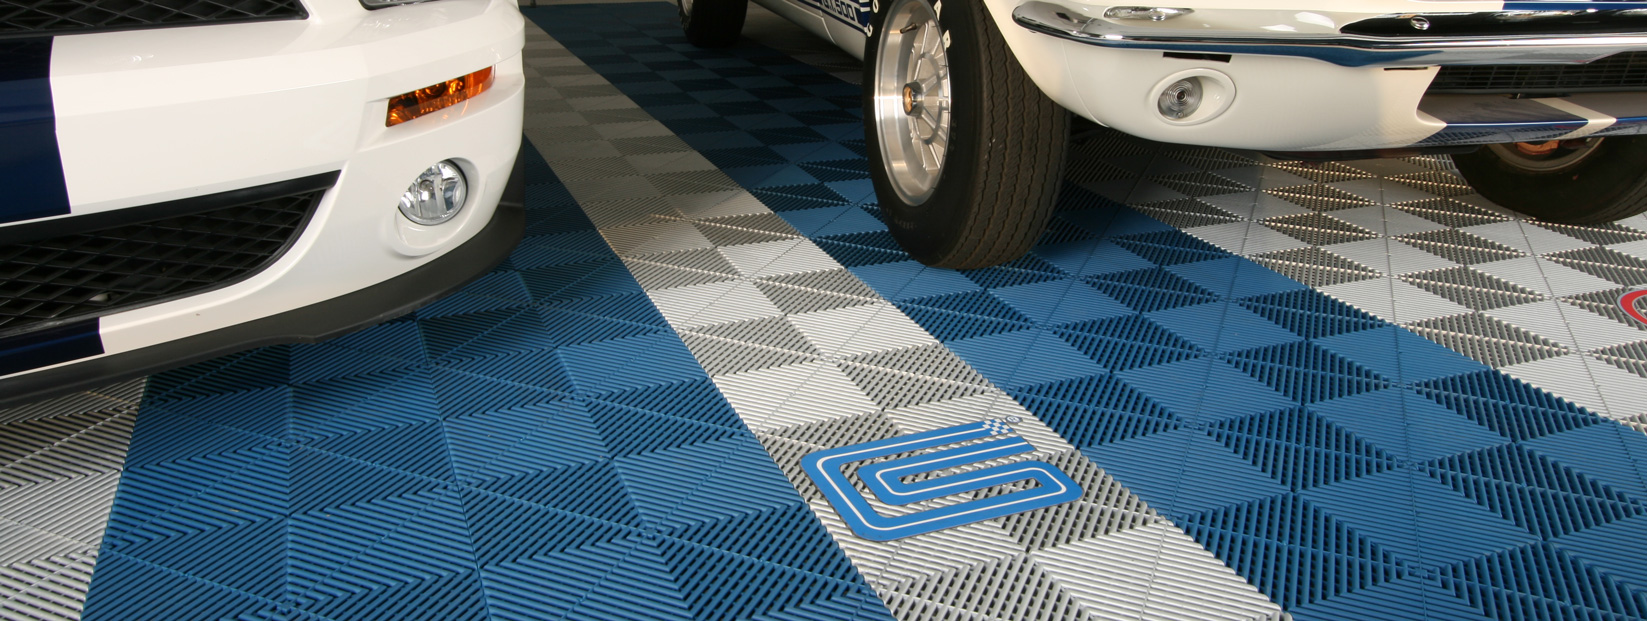 Shreveport Garage Flooring